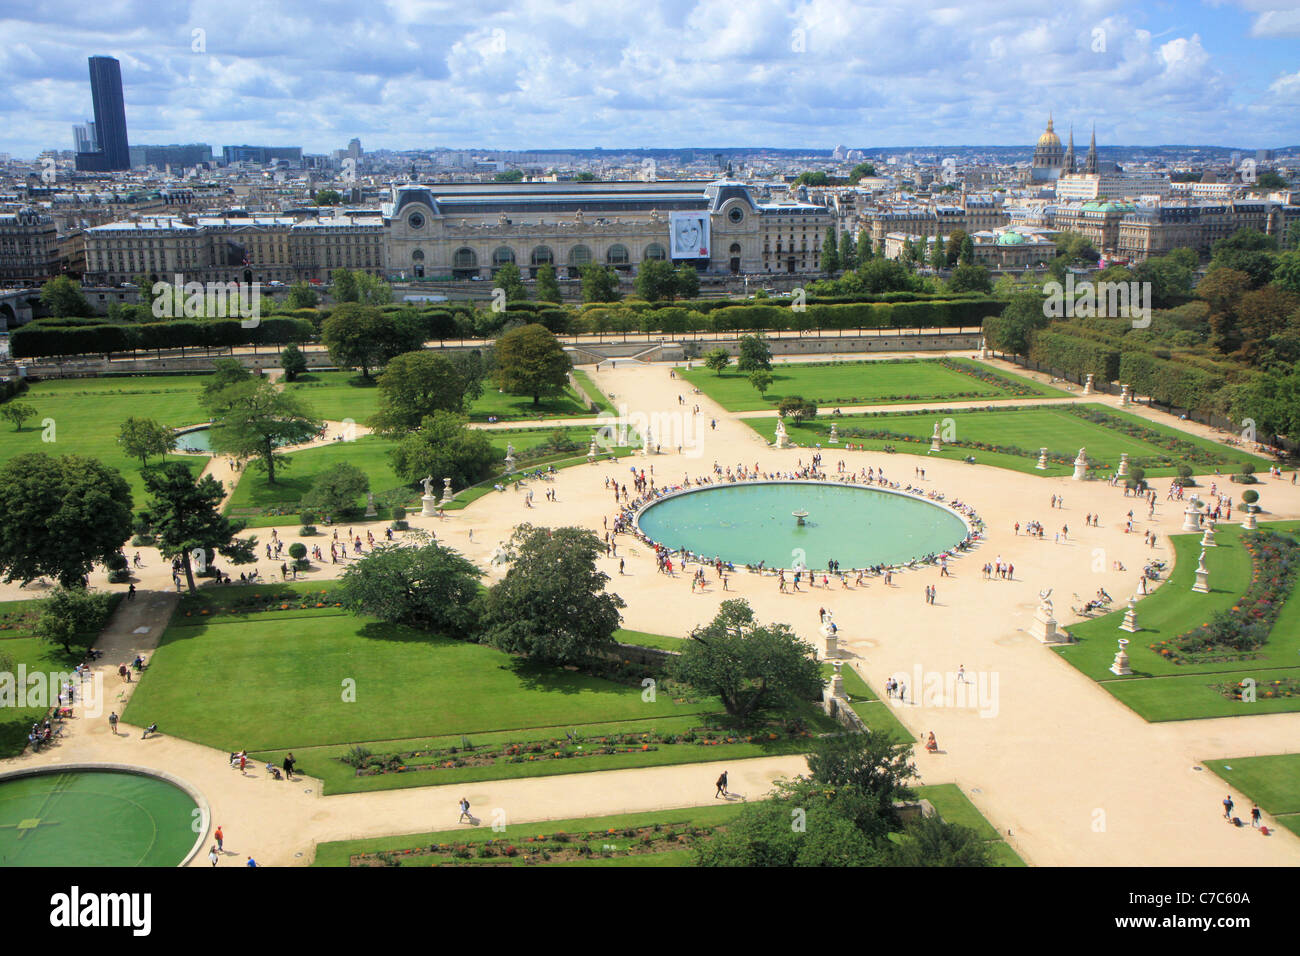 aerial view of jardin des tuileries from the great wheel paris stock photo royalty free image. Black Bedroom Furniture Sets. Home Design Ideas